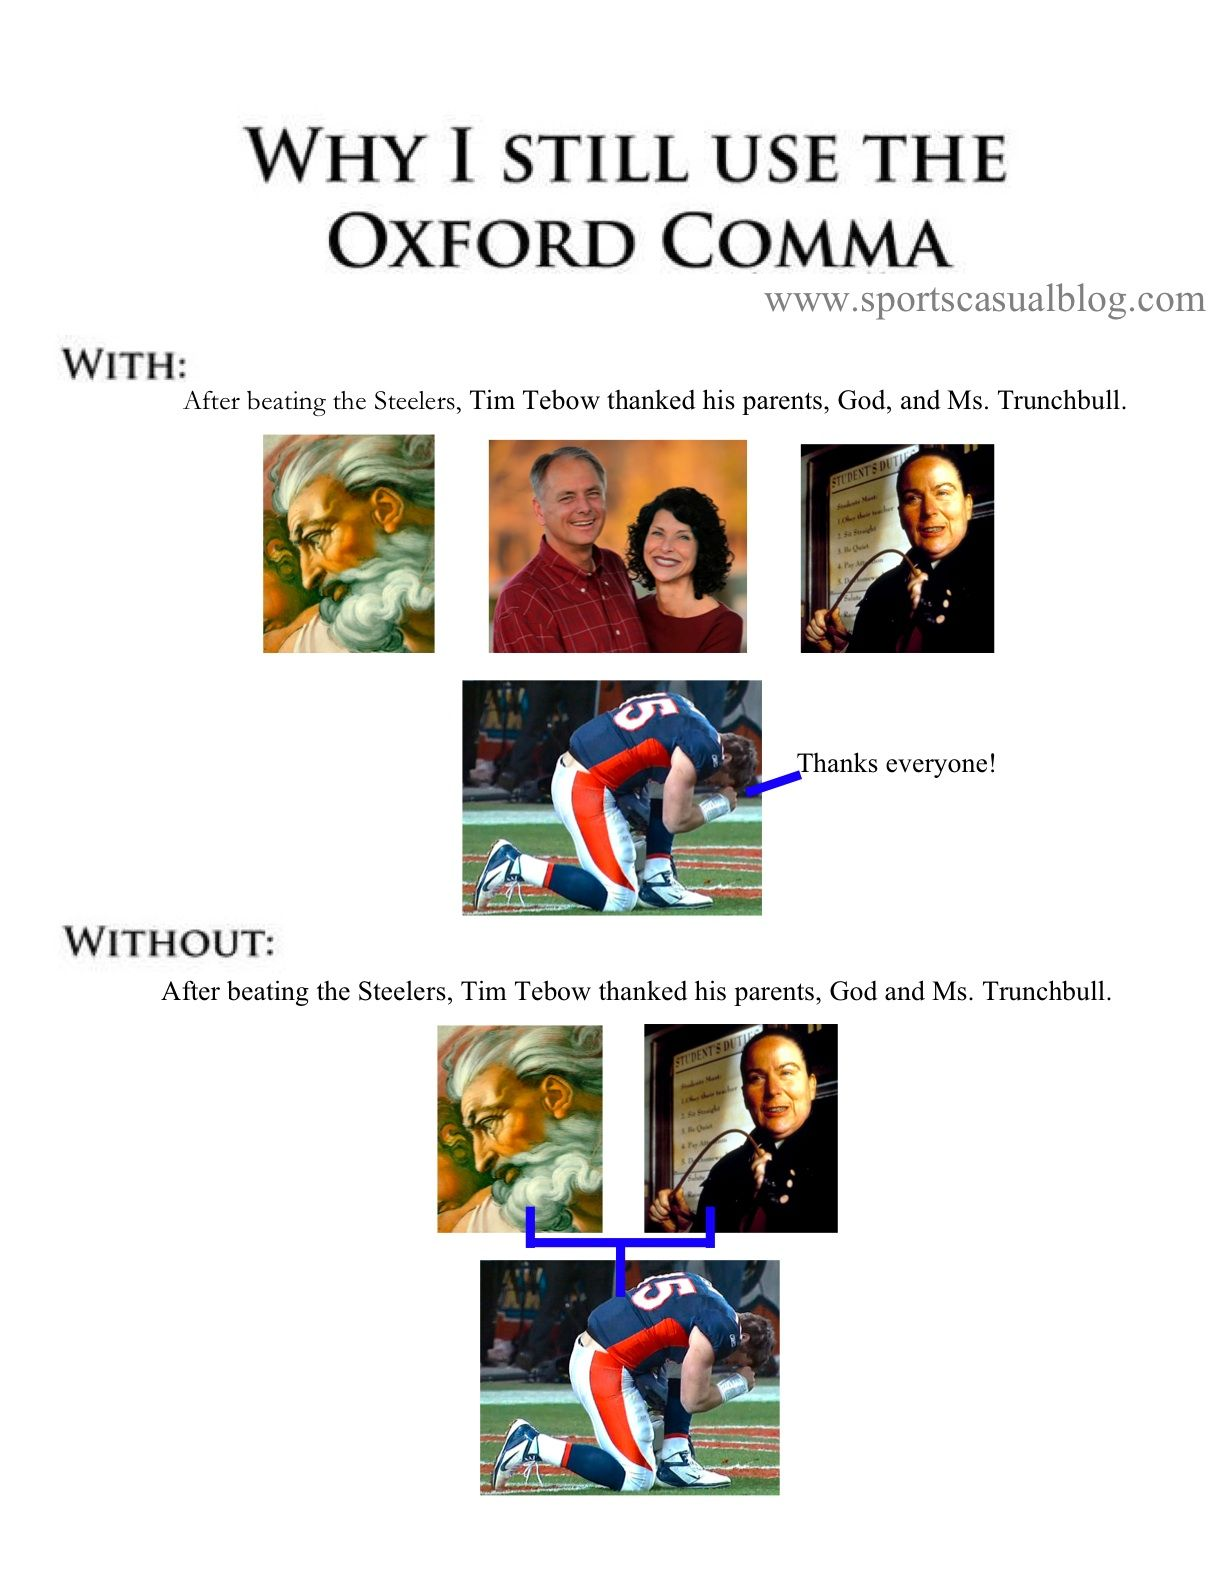 Oxford comma online dating